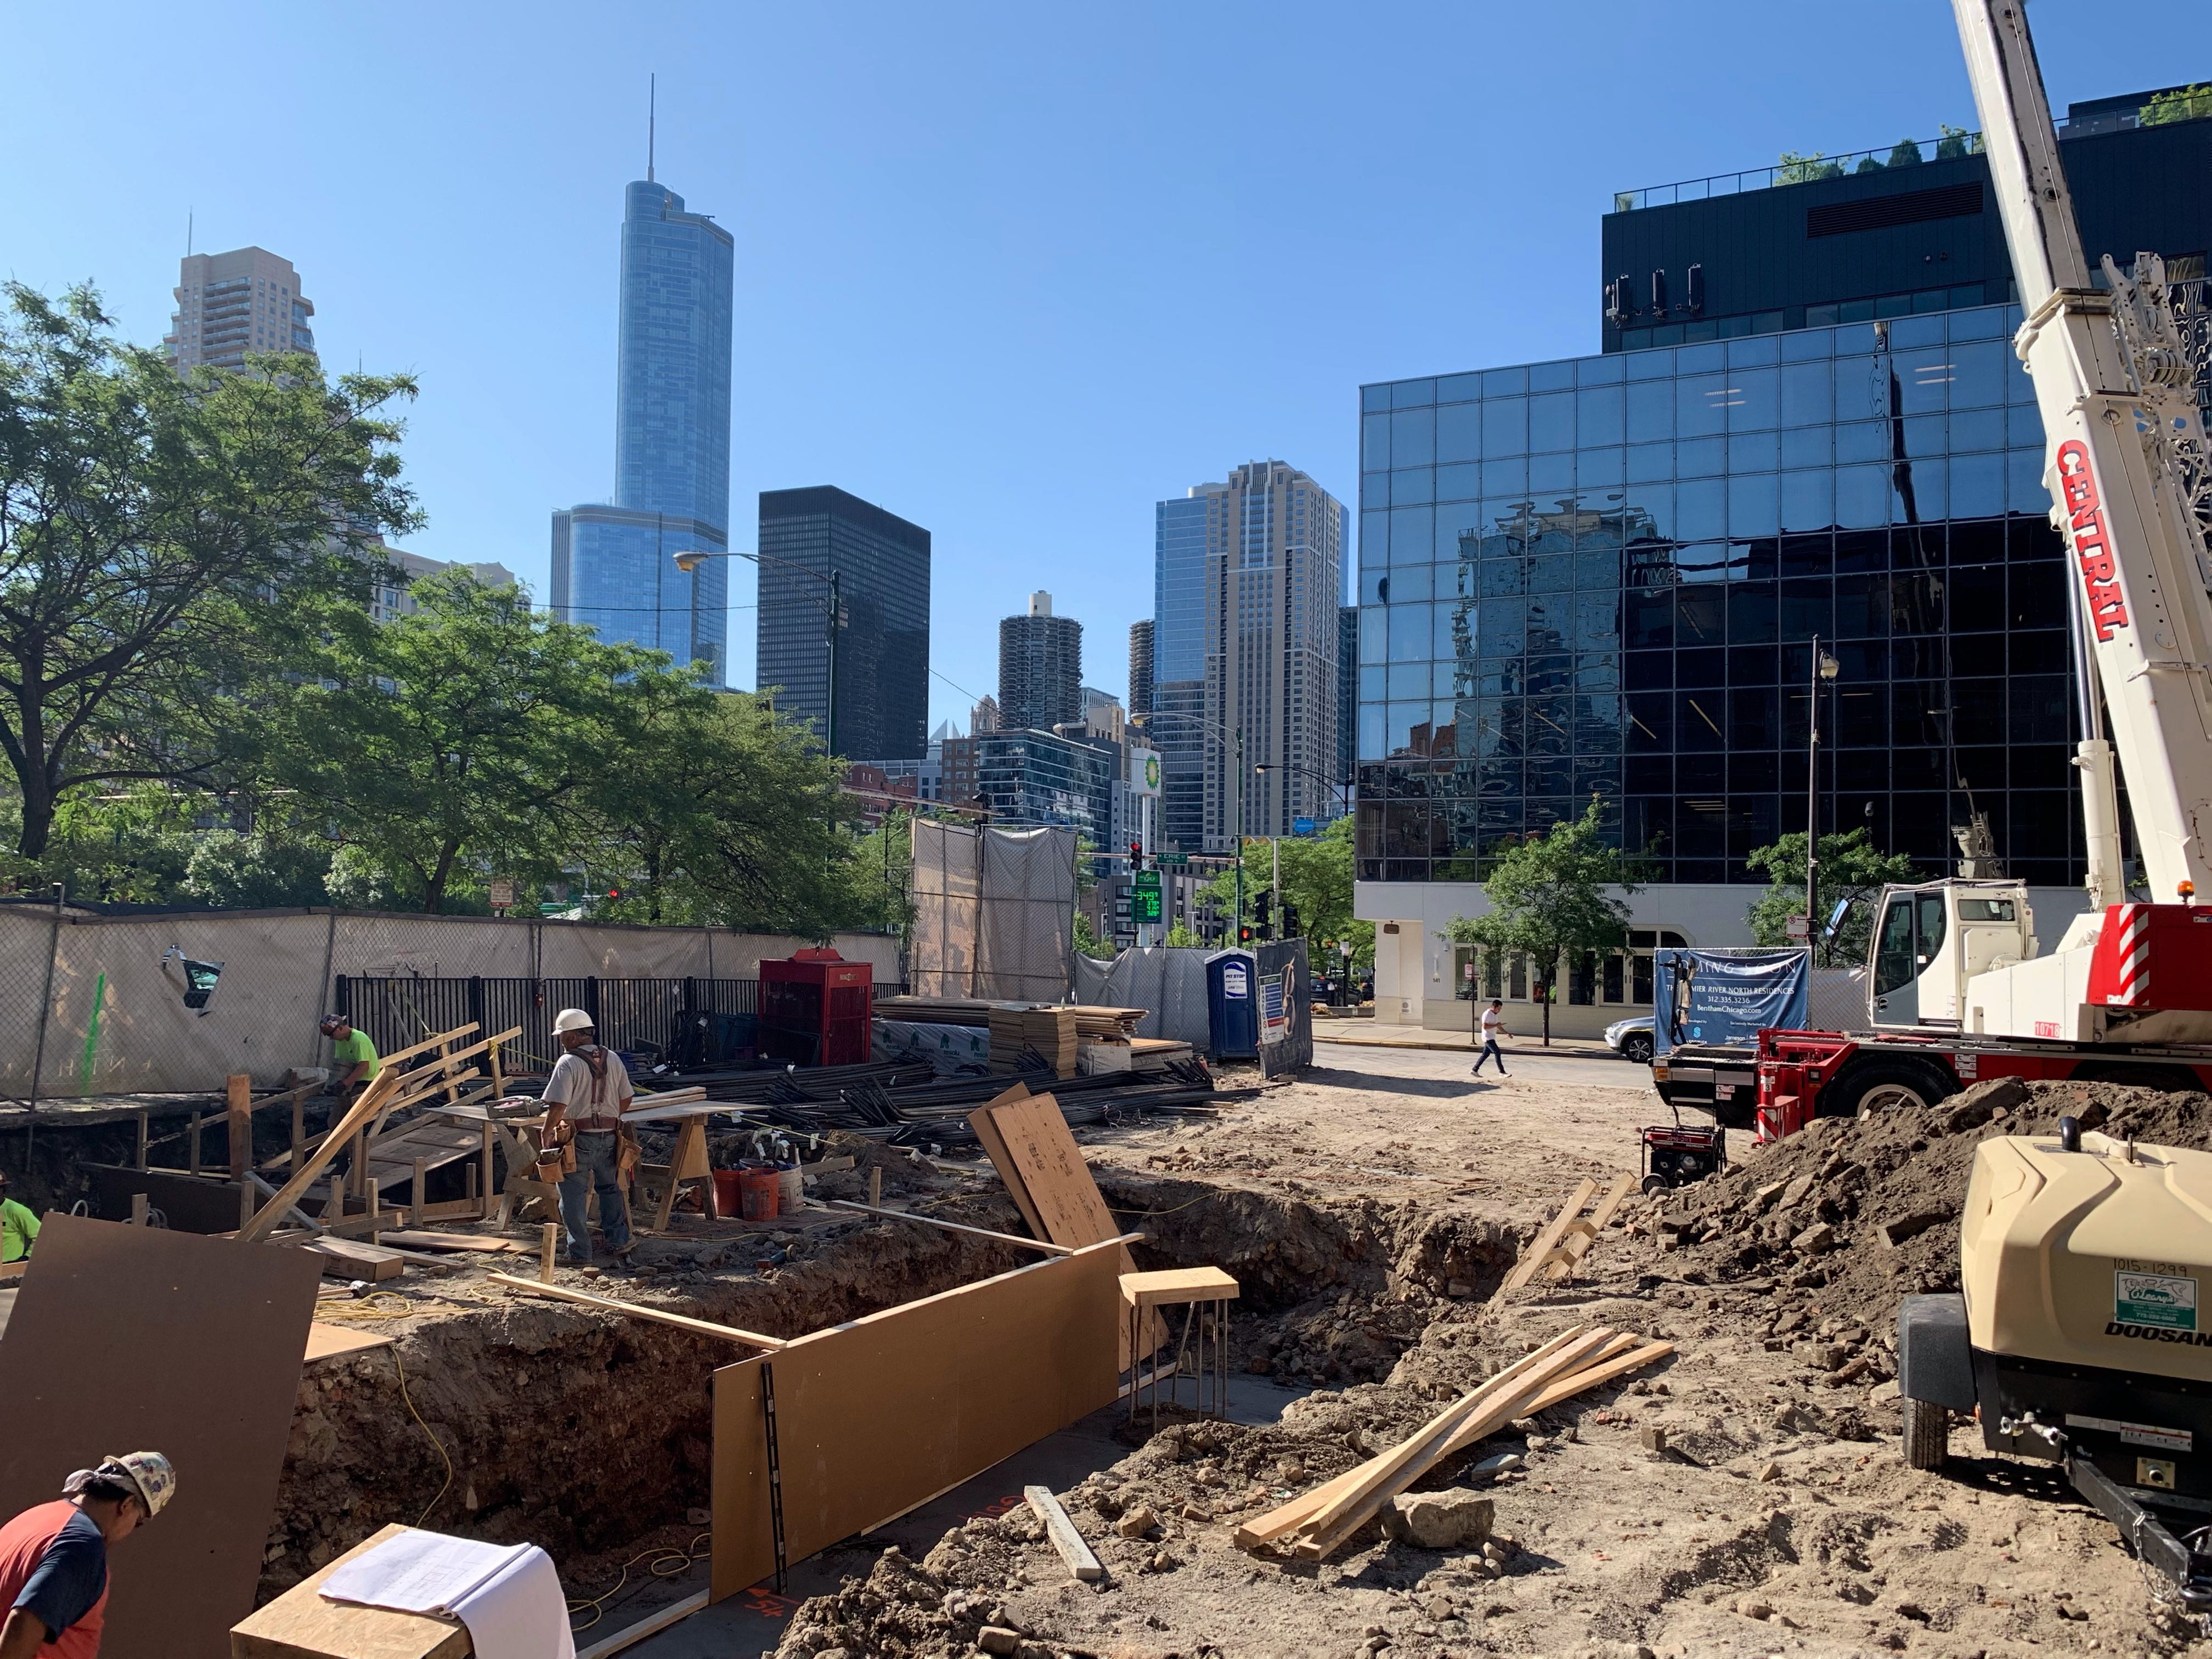 A construction site with workers excavating dirt and building formwork for concrete walls. The site is surrounded by a fence and high-rise towers are visible in the distance.